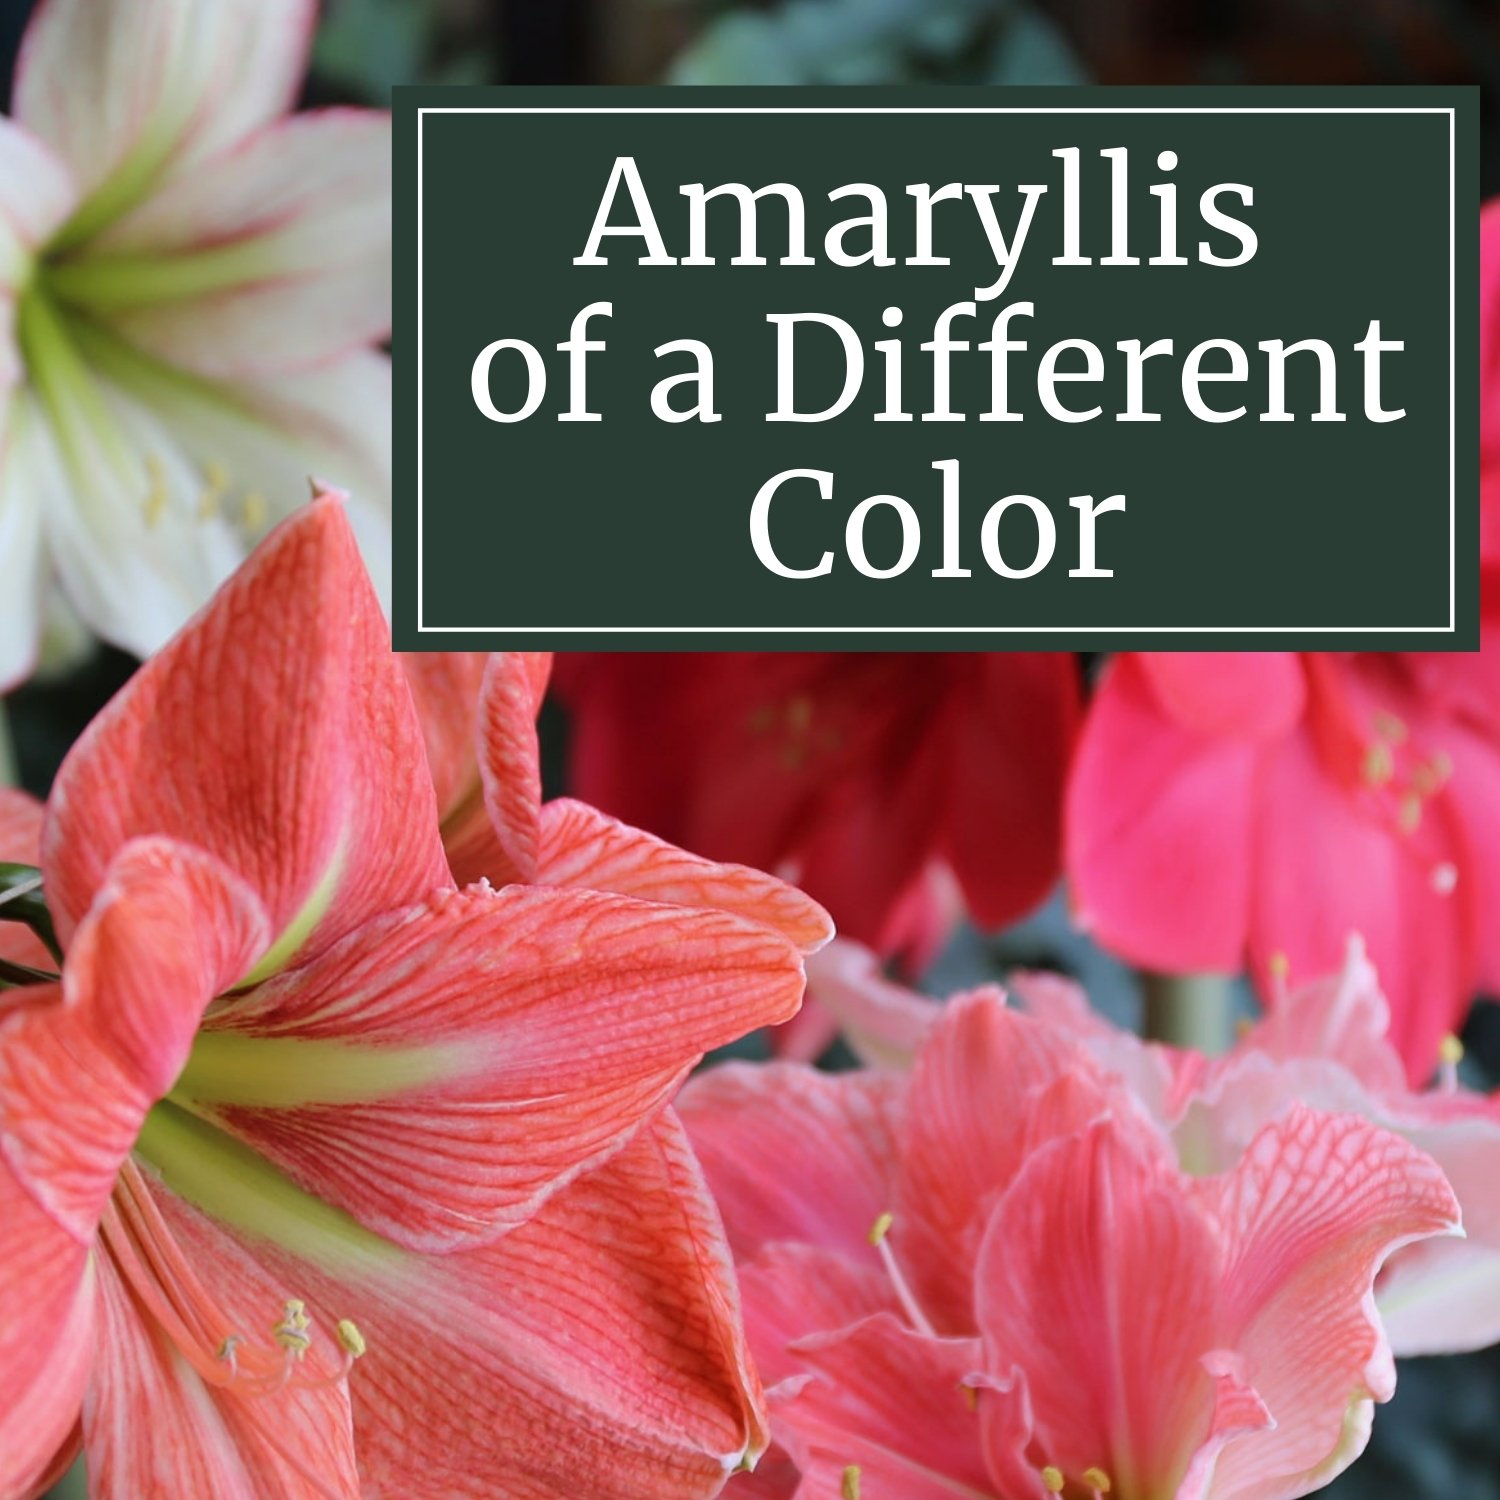 Amaryllis of a Different Color - Longfield Gardens